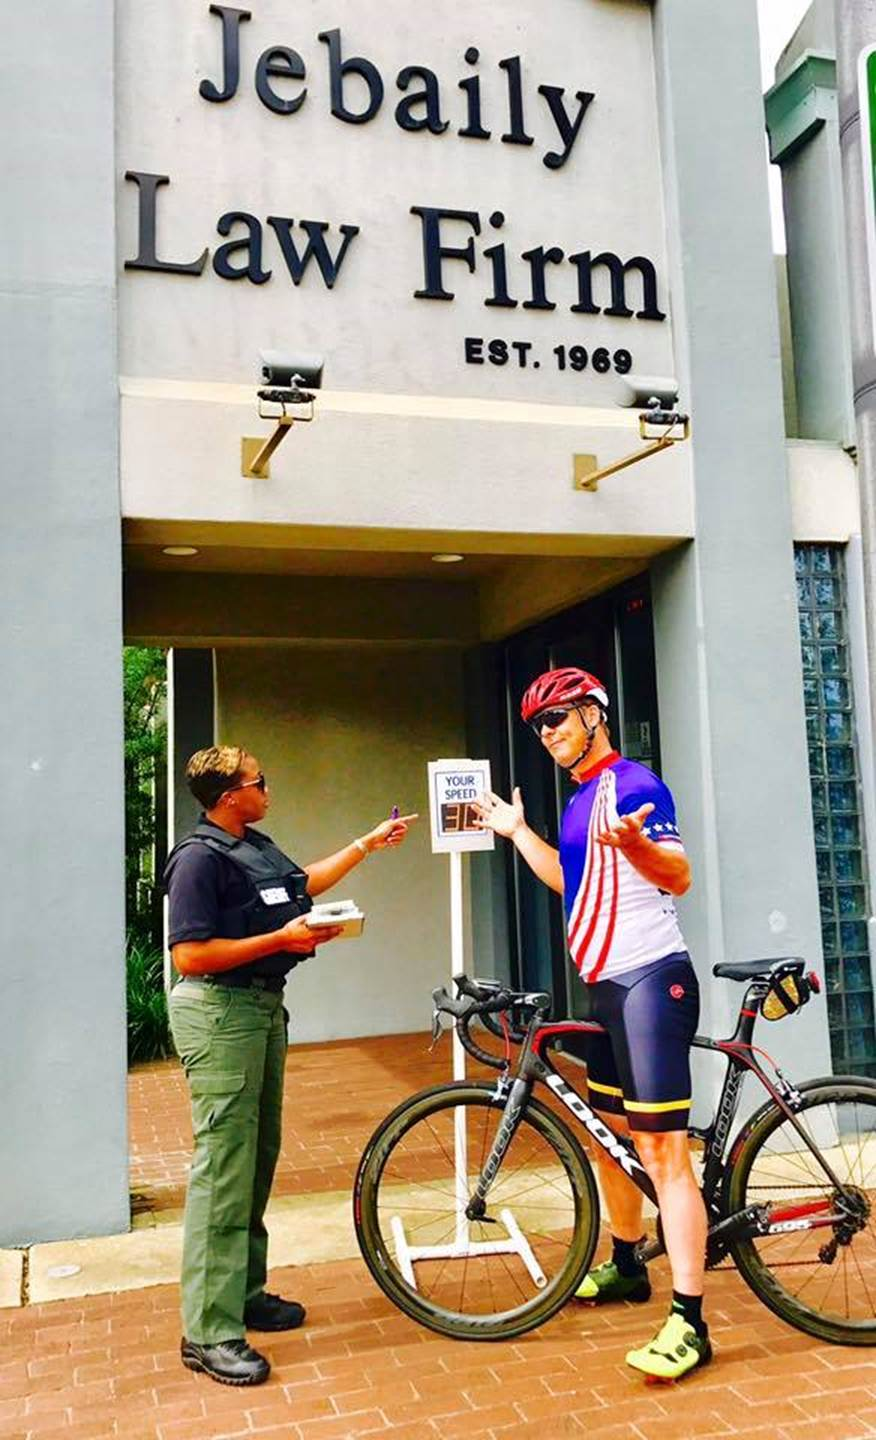 Jebaily Law Firm Sponsored the DownTownRoll and Cycling Festival